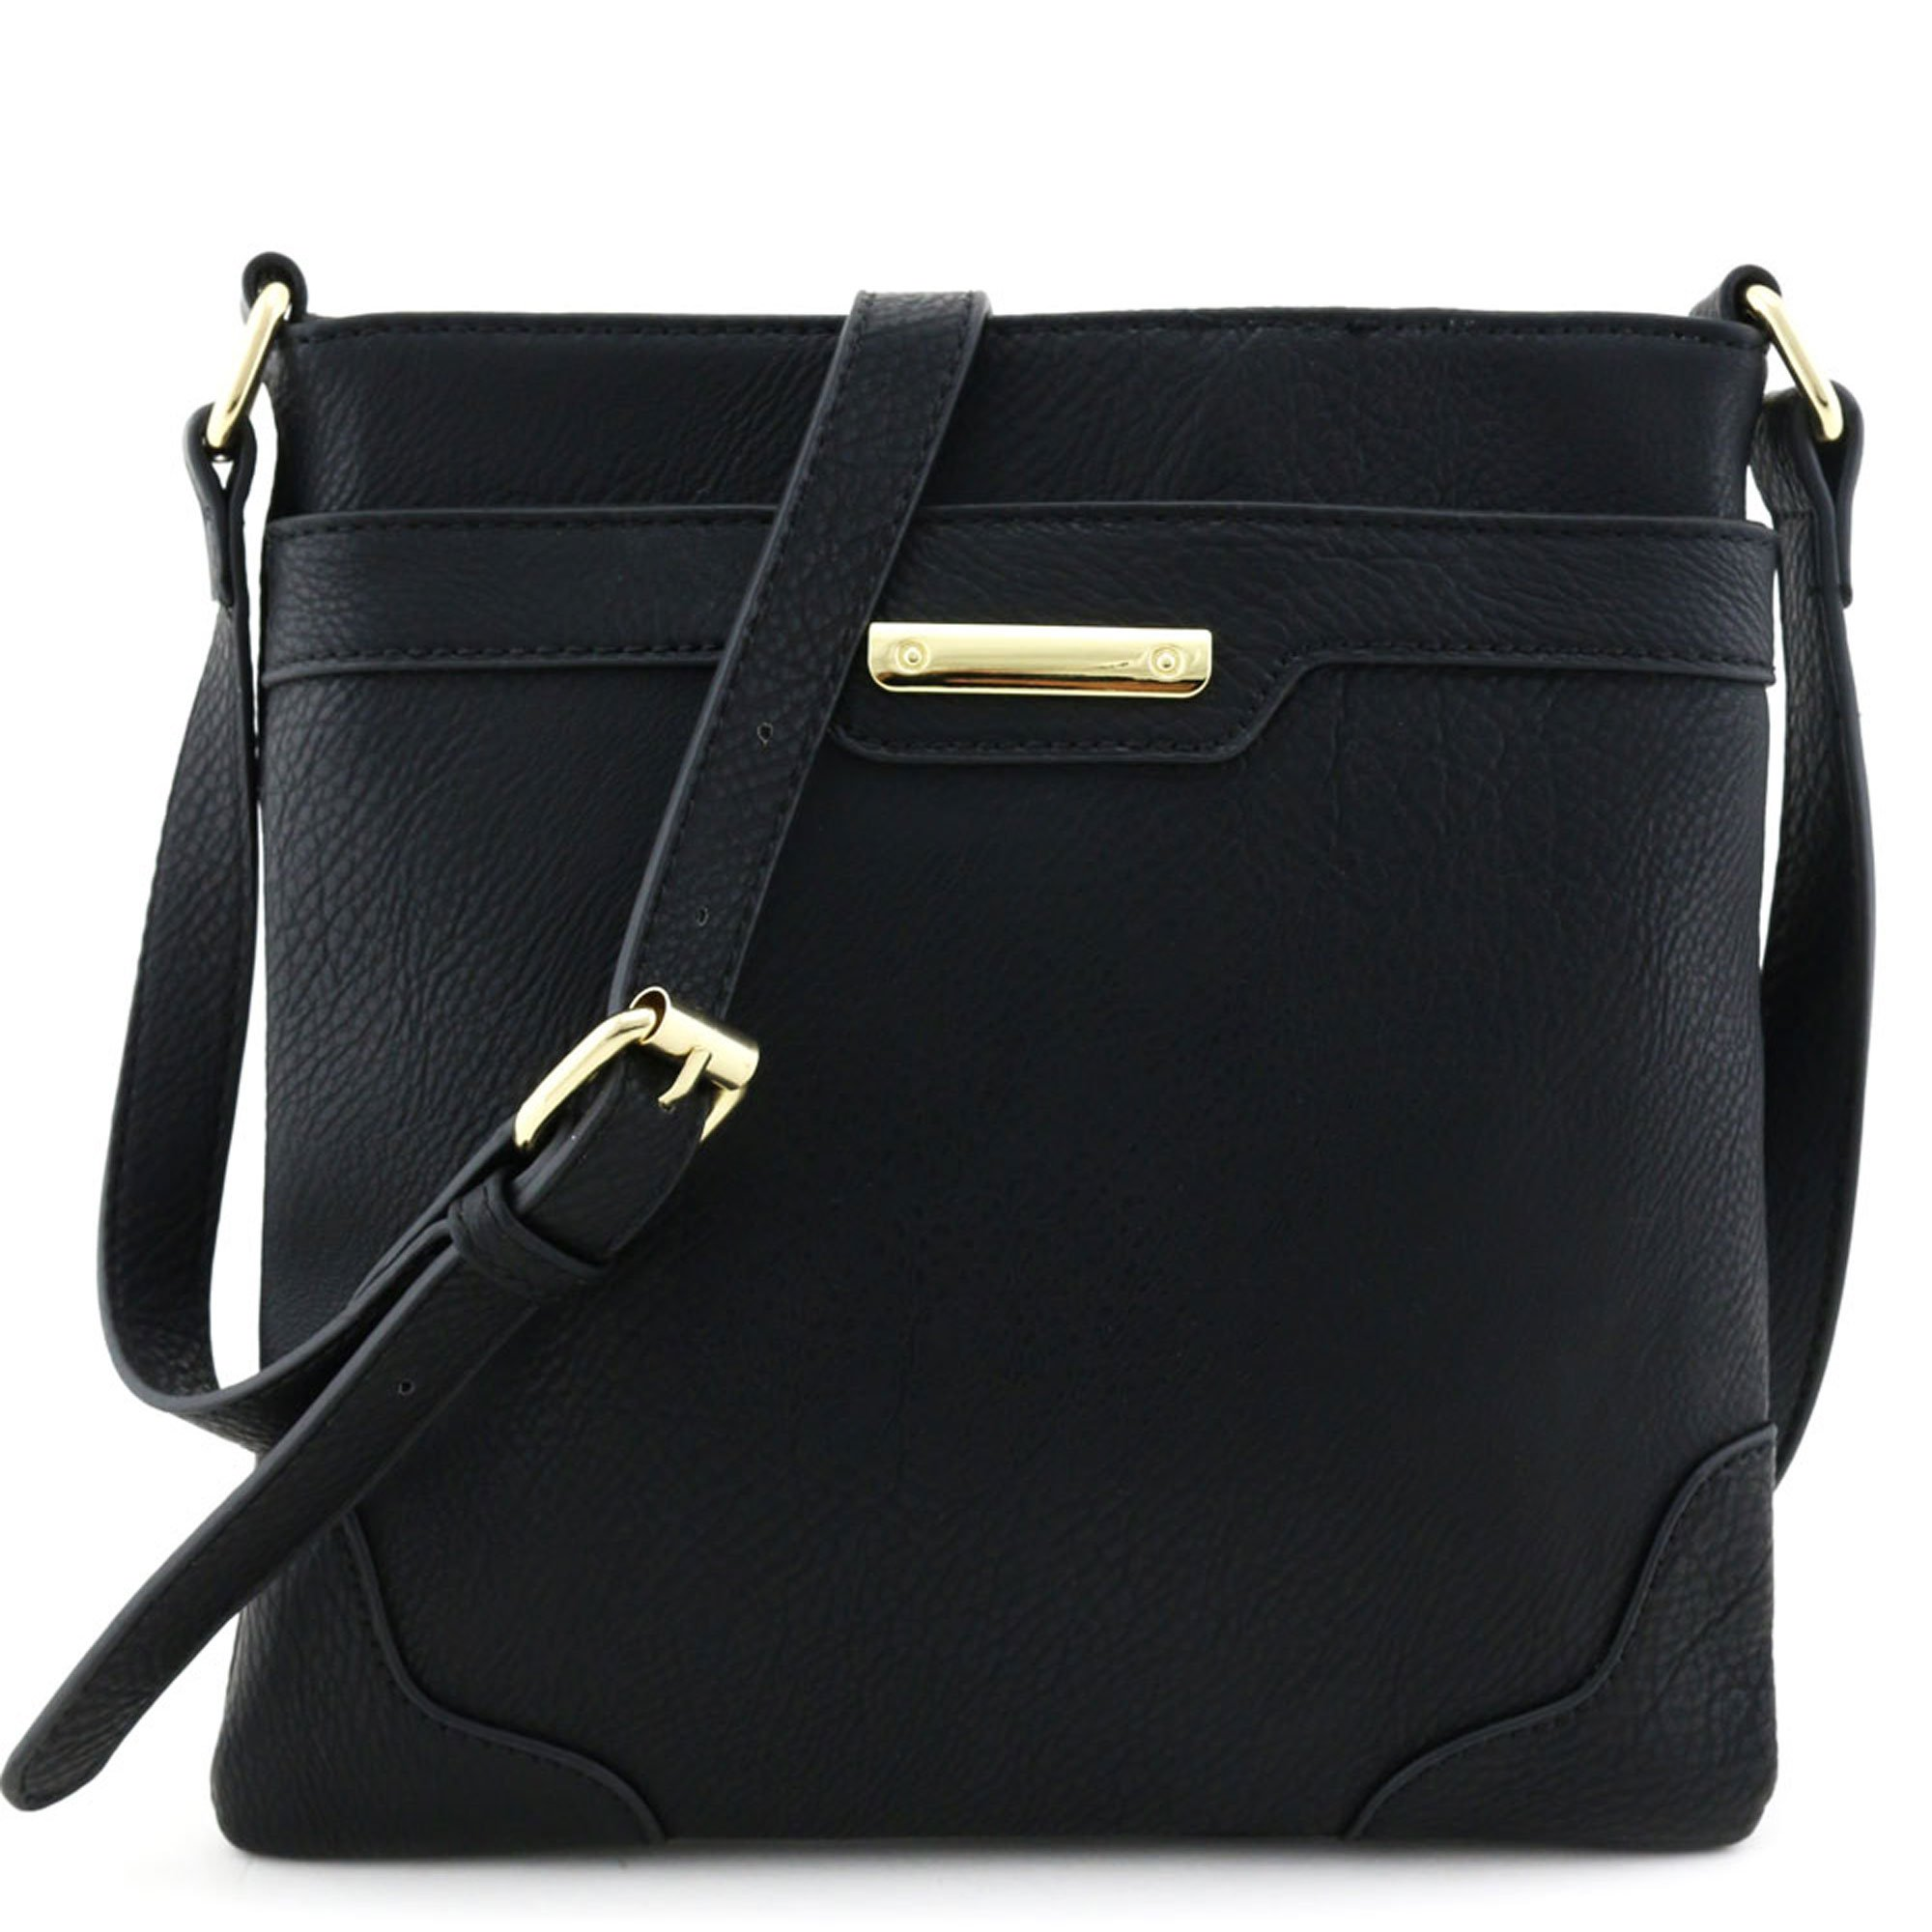 Women's Fashion Medium Size Crossbody Bag with Gold Plate Black